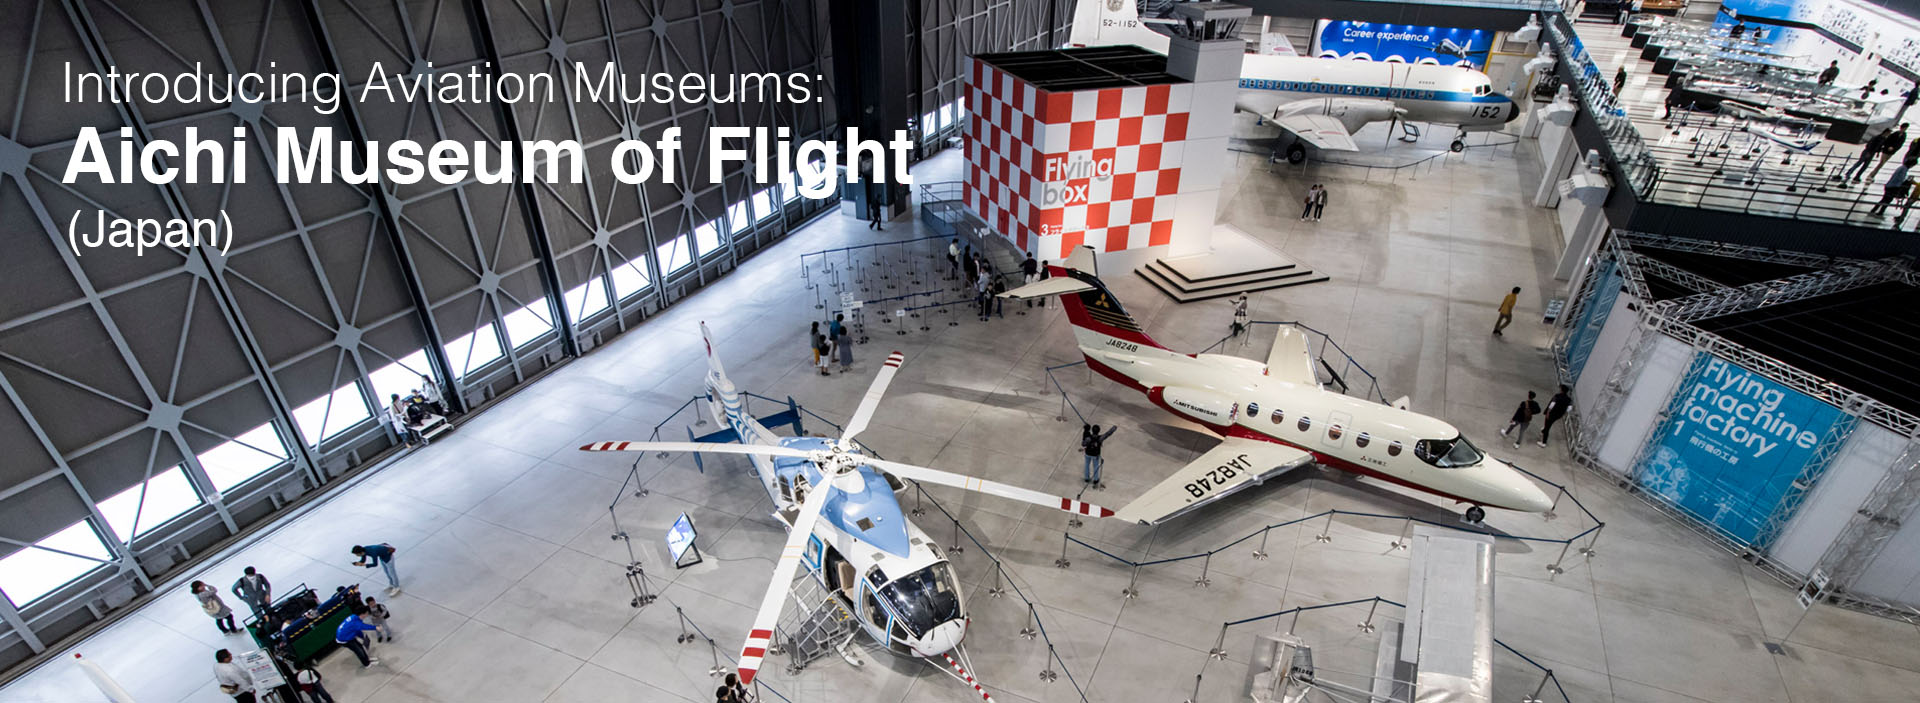 Aviation Museum: Aichi Museum of Flight (Nagoya, Japan)